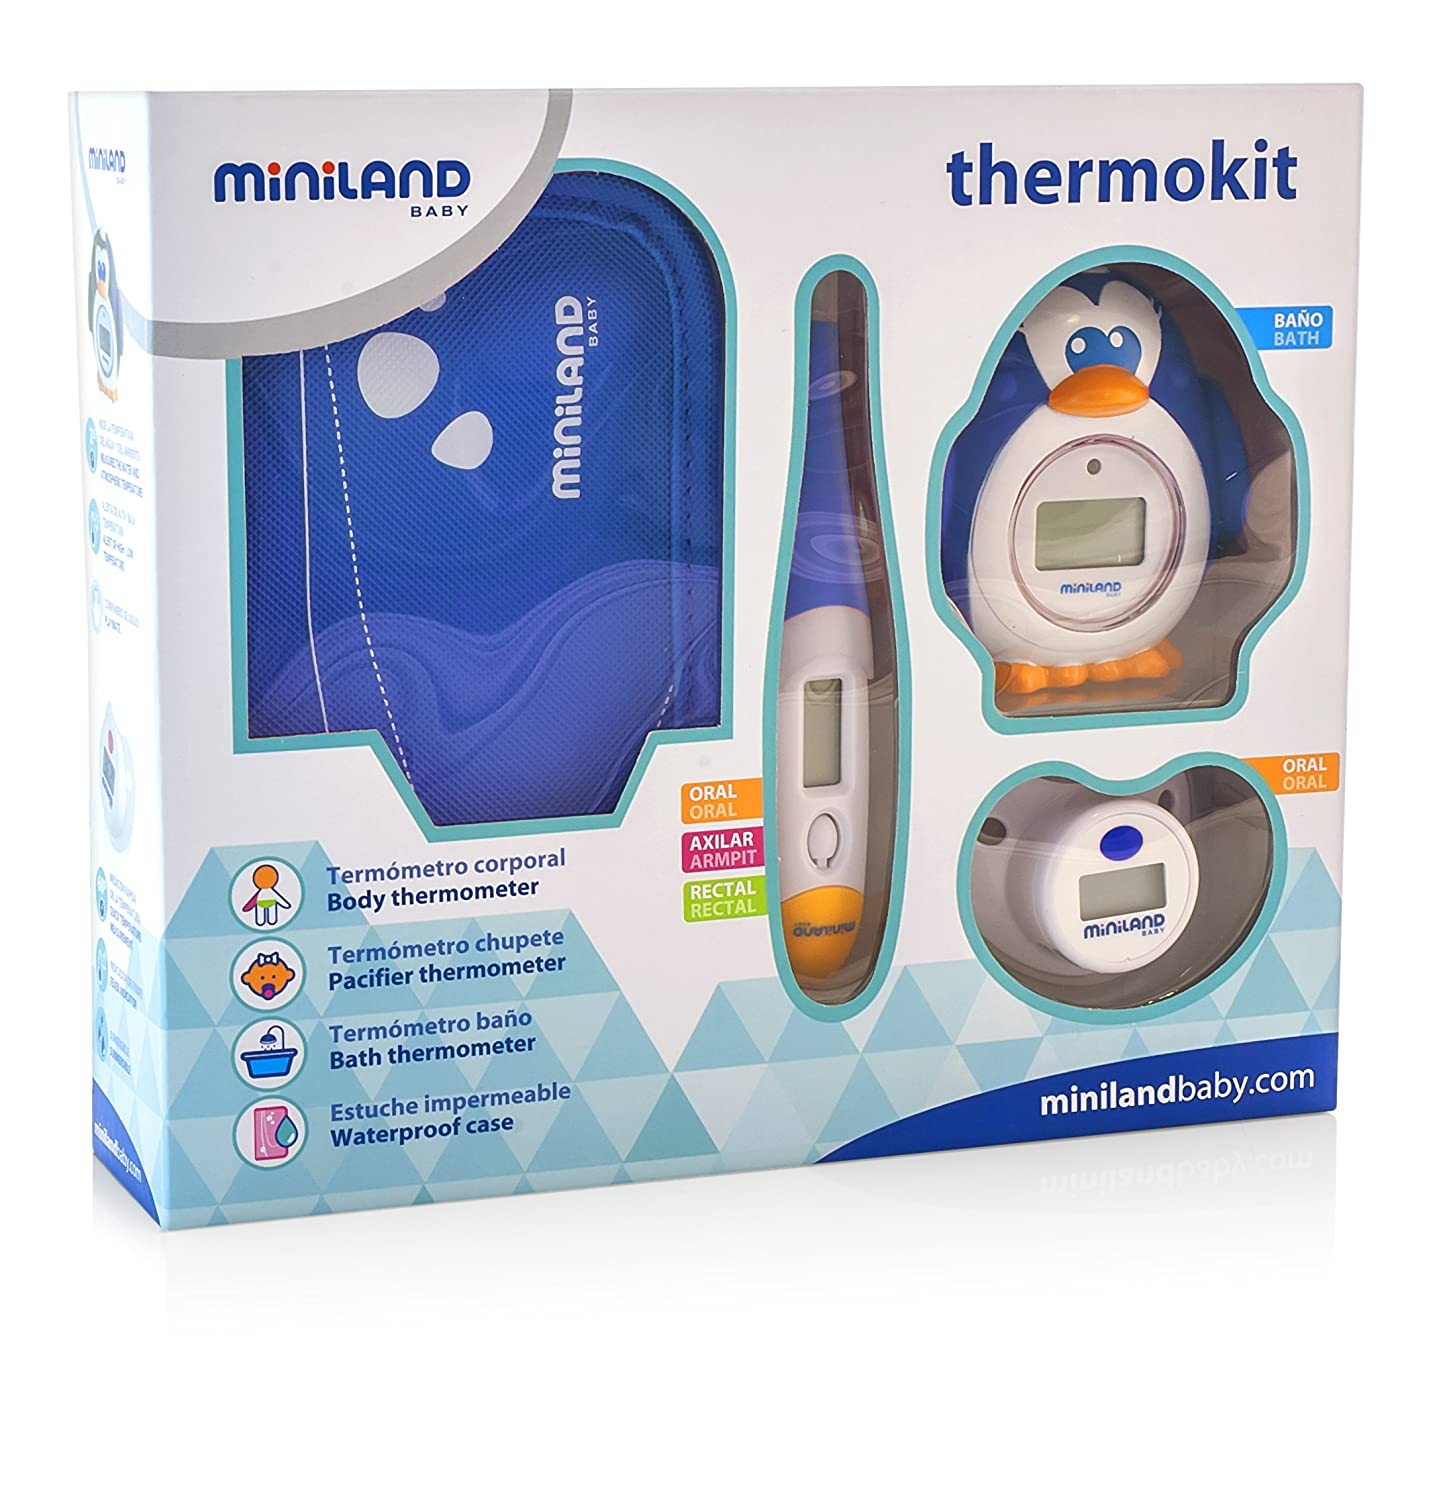 Miniland Easy to Use Thermometers, Blue, 3-Piece: Amazon.co.uk: Baby